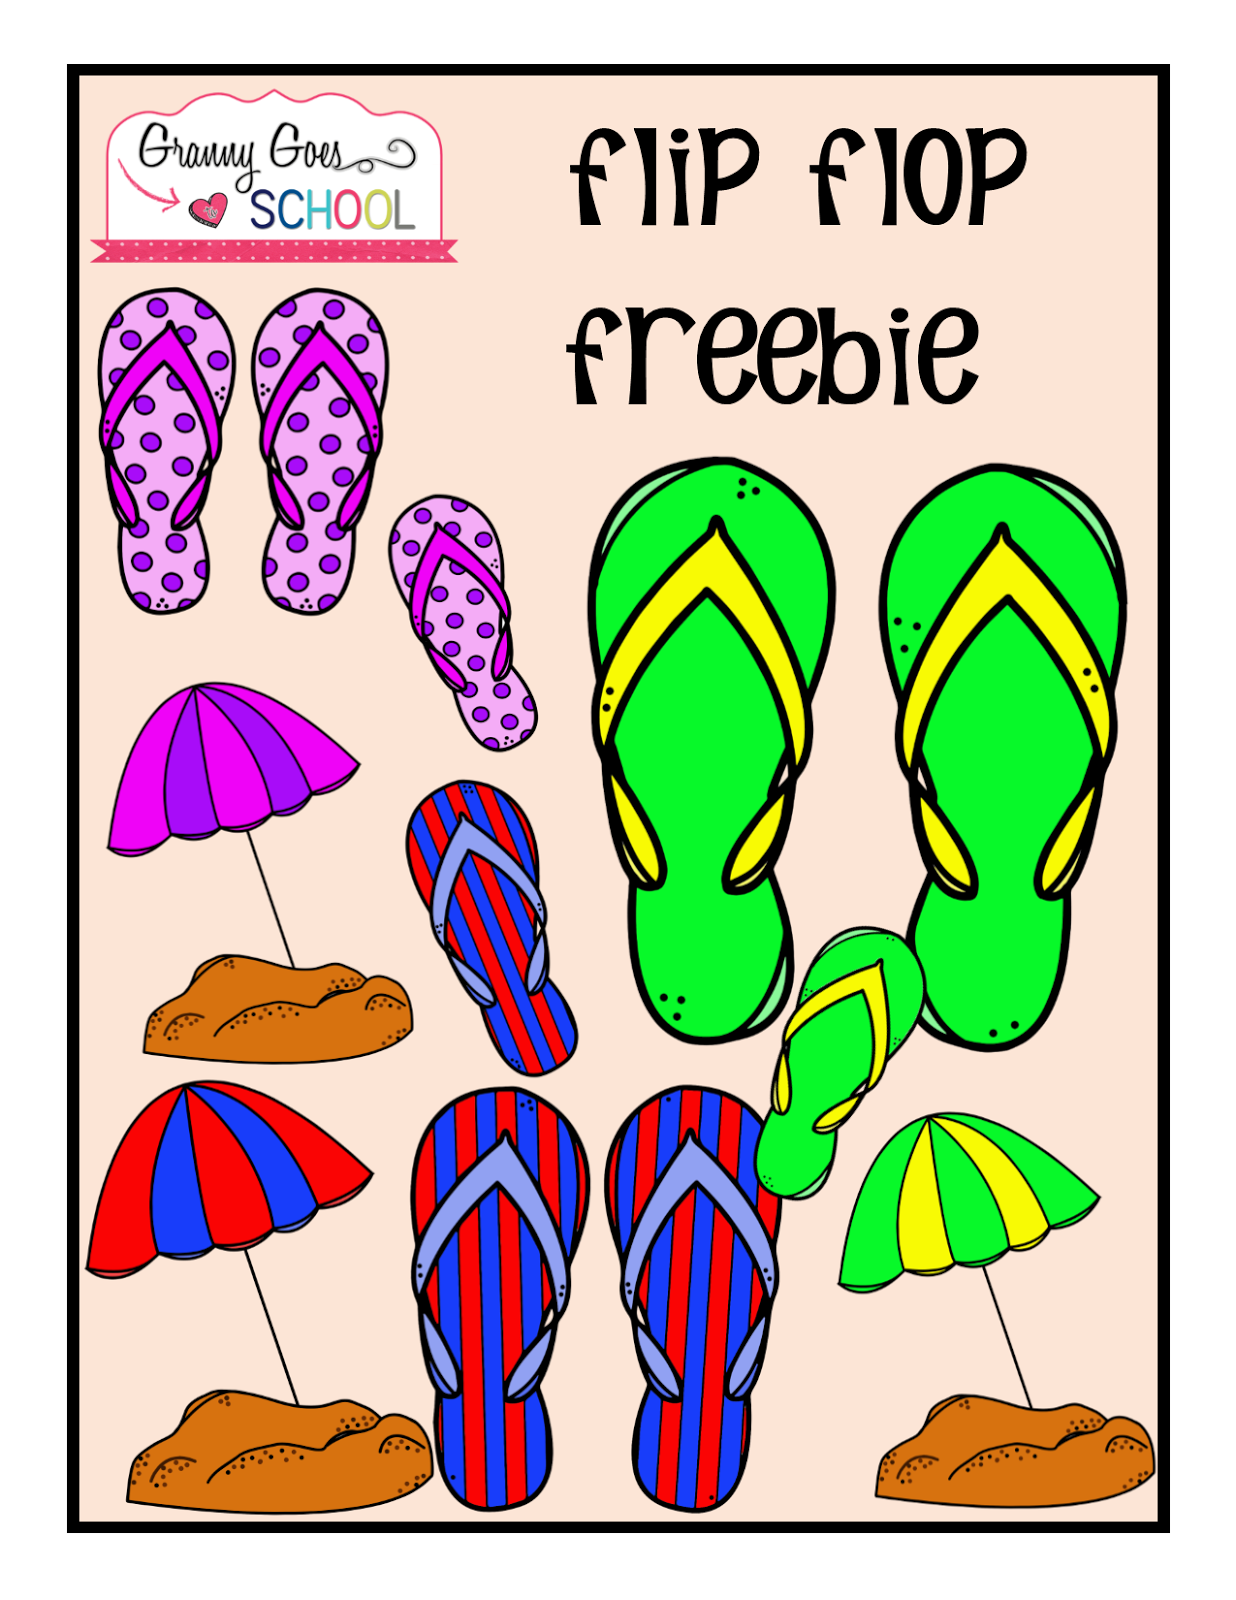 https://www.teacherspayteachers.com/Product/Flip-Flop-Freebie-1835559